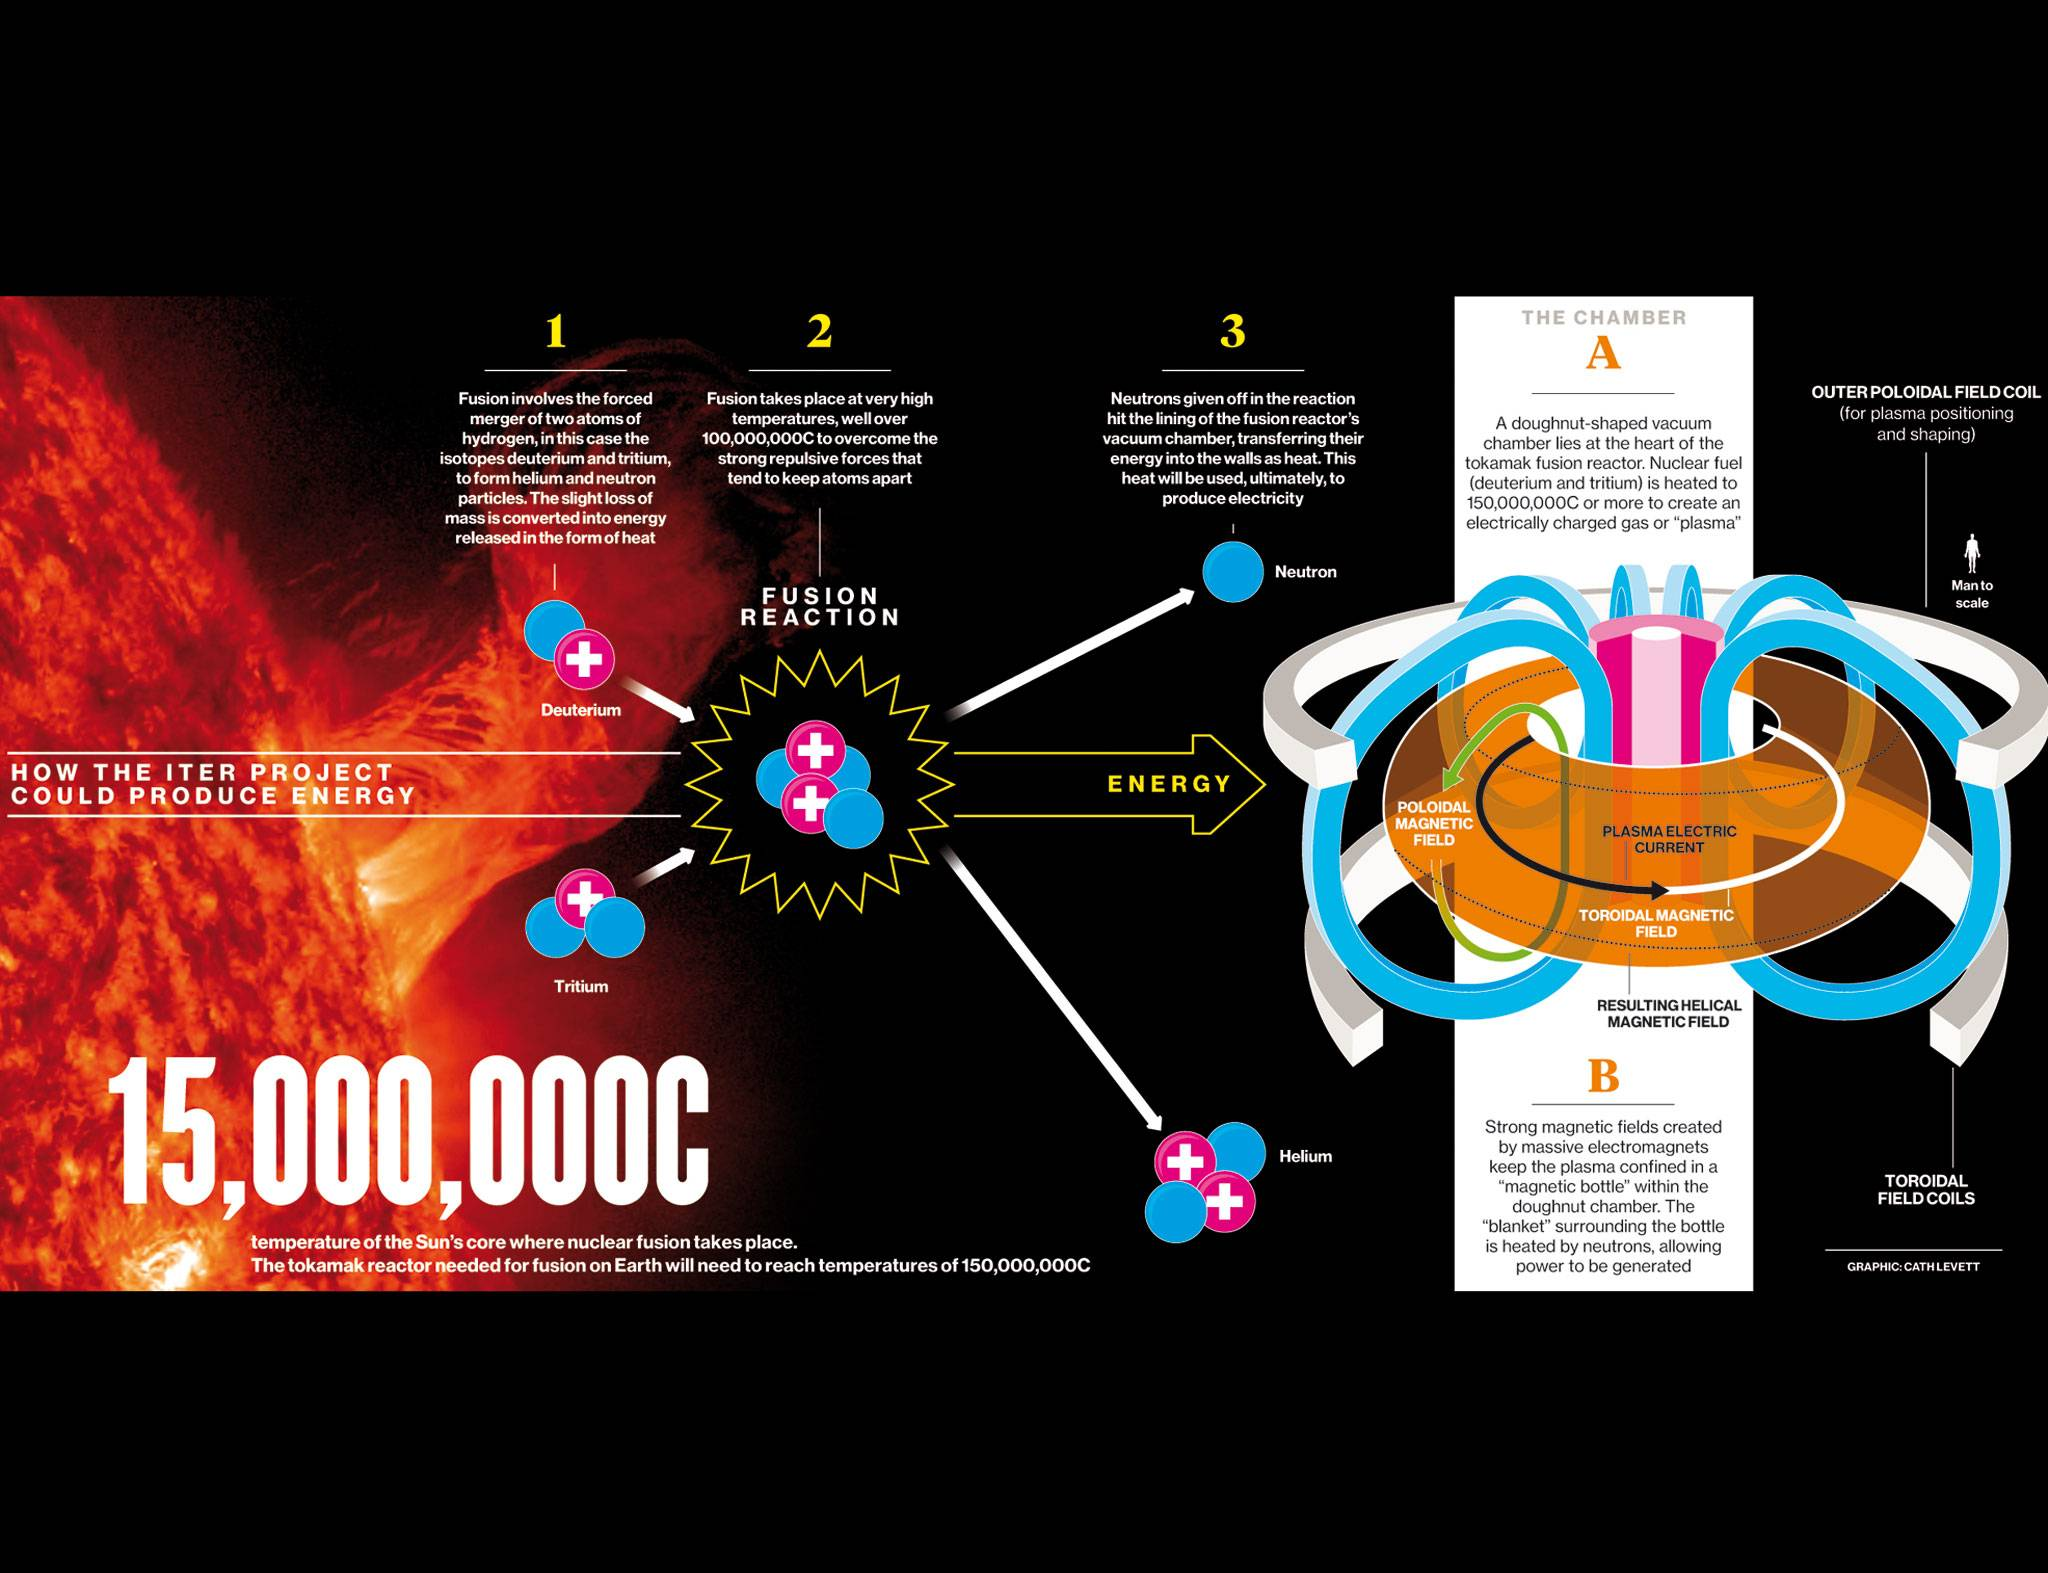 germany develops nuclear fusion machine